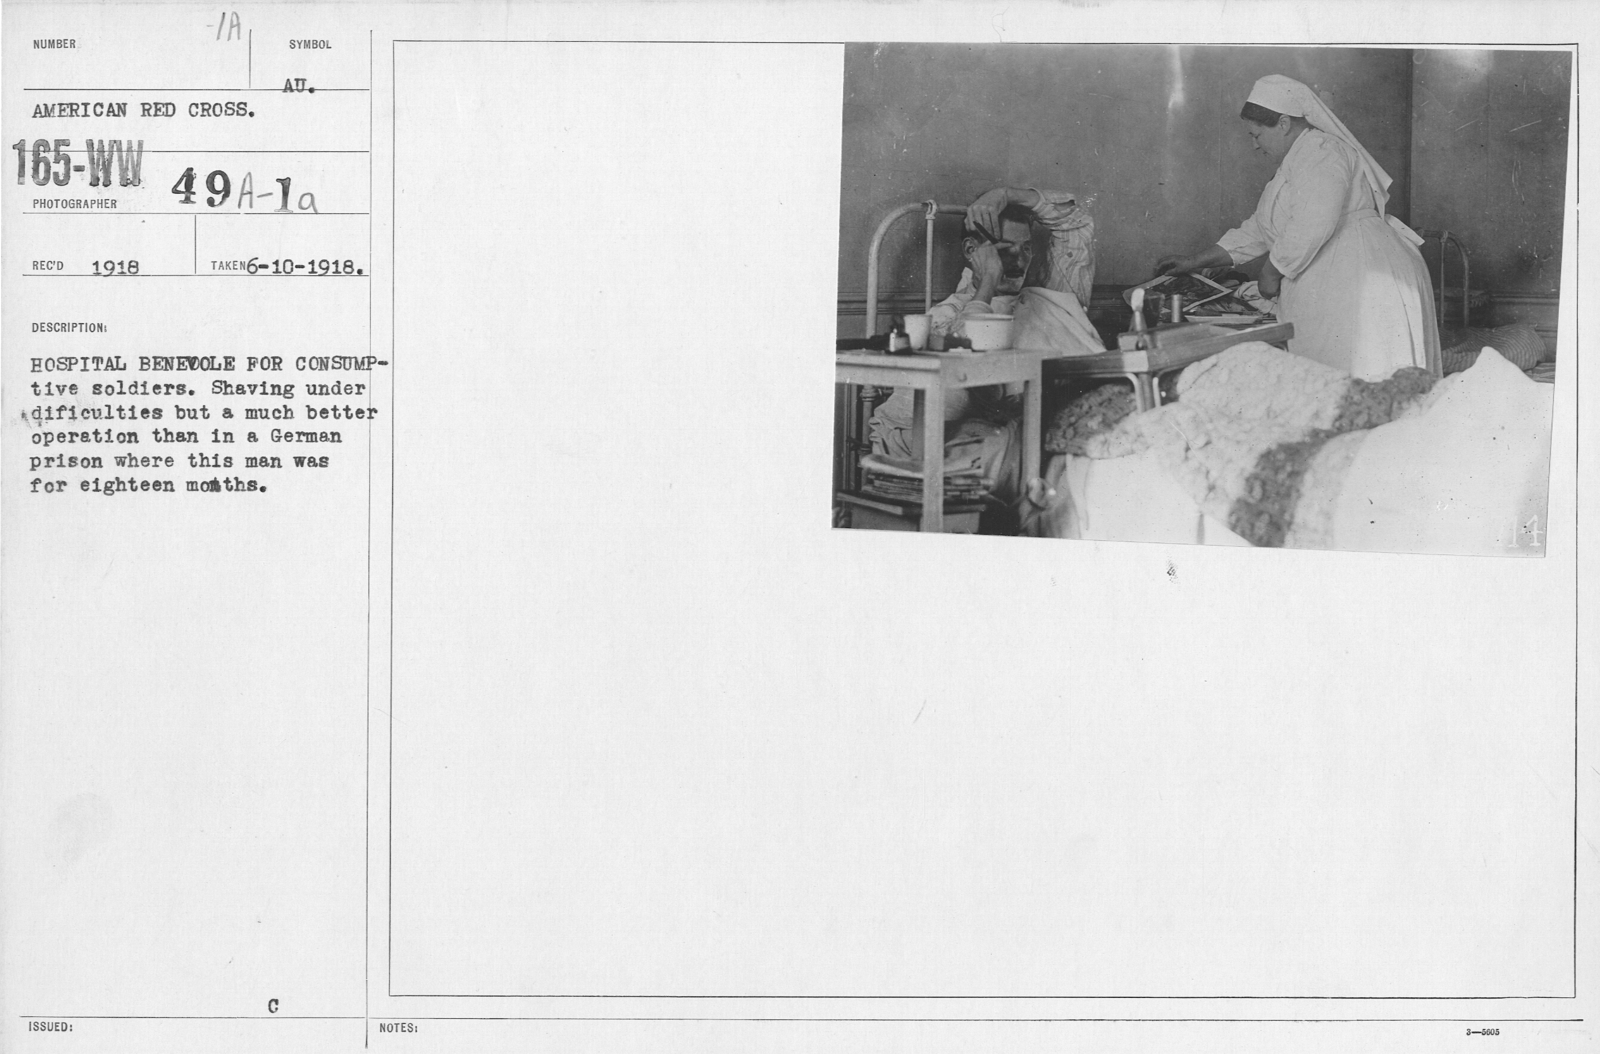 American Red Cross - Rehabilitation - Hospital Benevoole for Consumptive soldiers. Shaving under difficulties but a much better operation than in a German prison where this man was for eighteen months